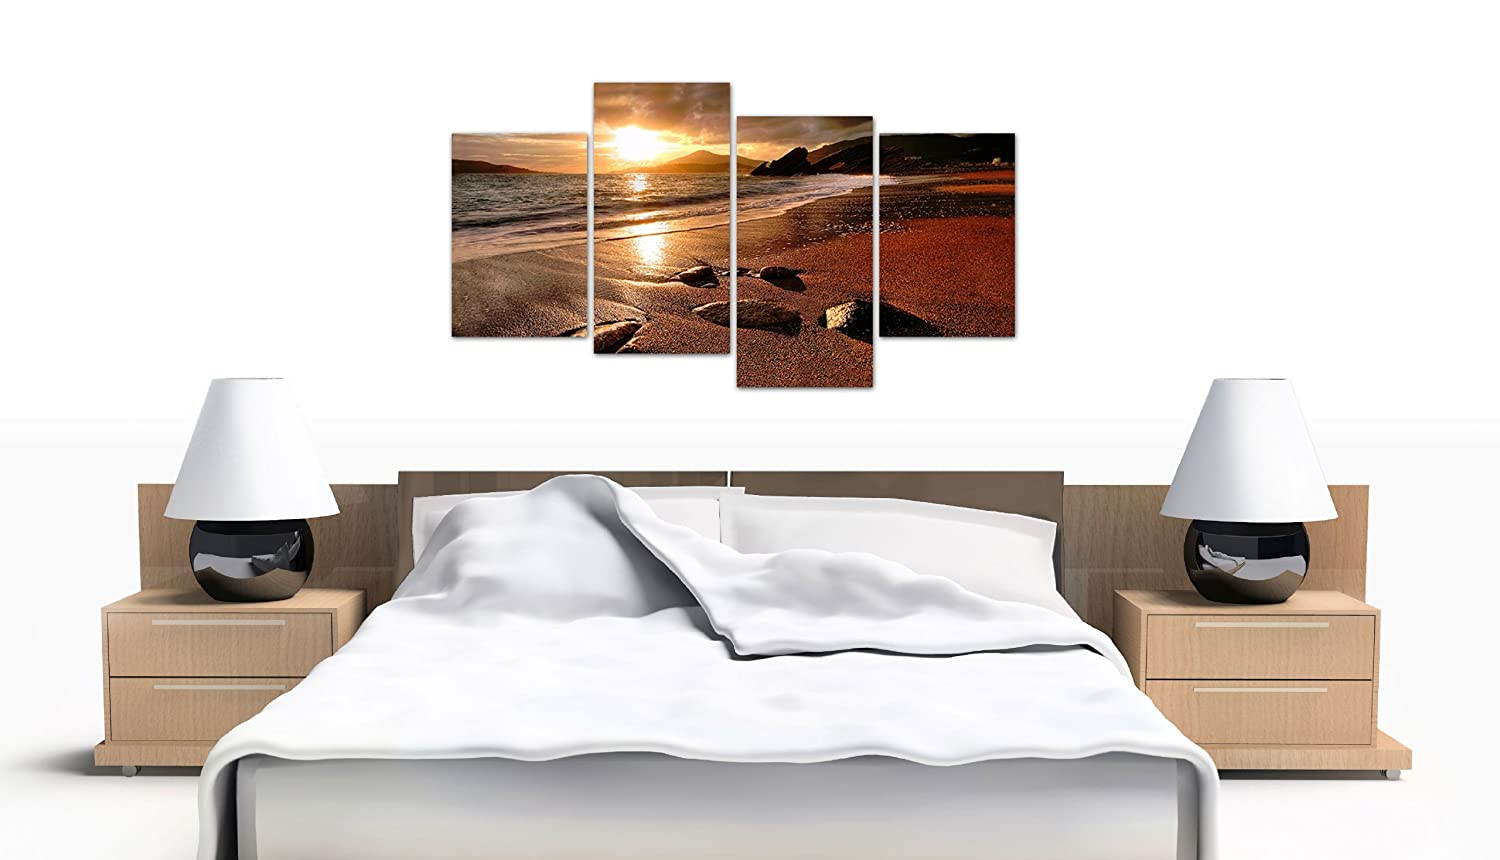 Amazon.com: Large Golden Brown Sunset Beach Canvas Wall Art Pictures ...